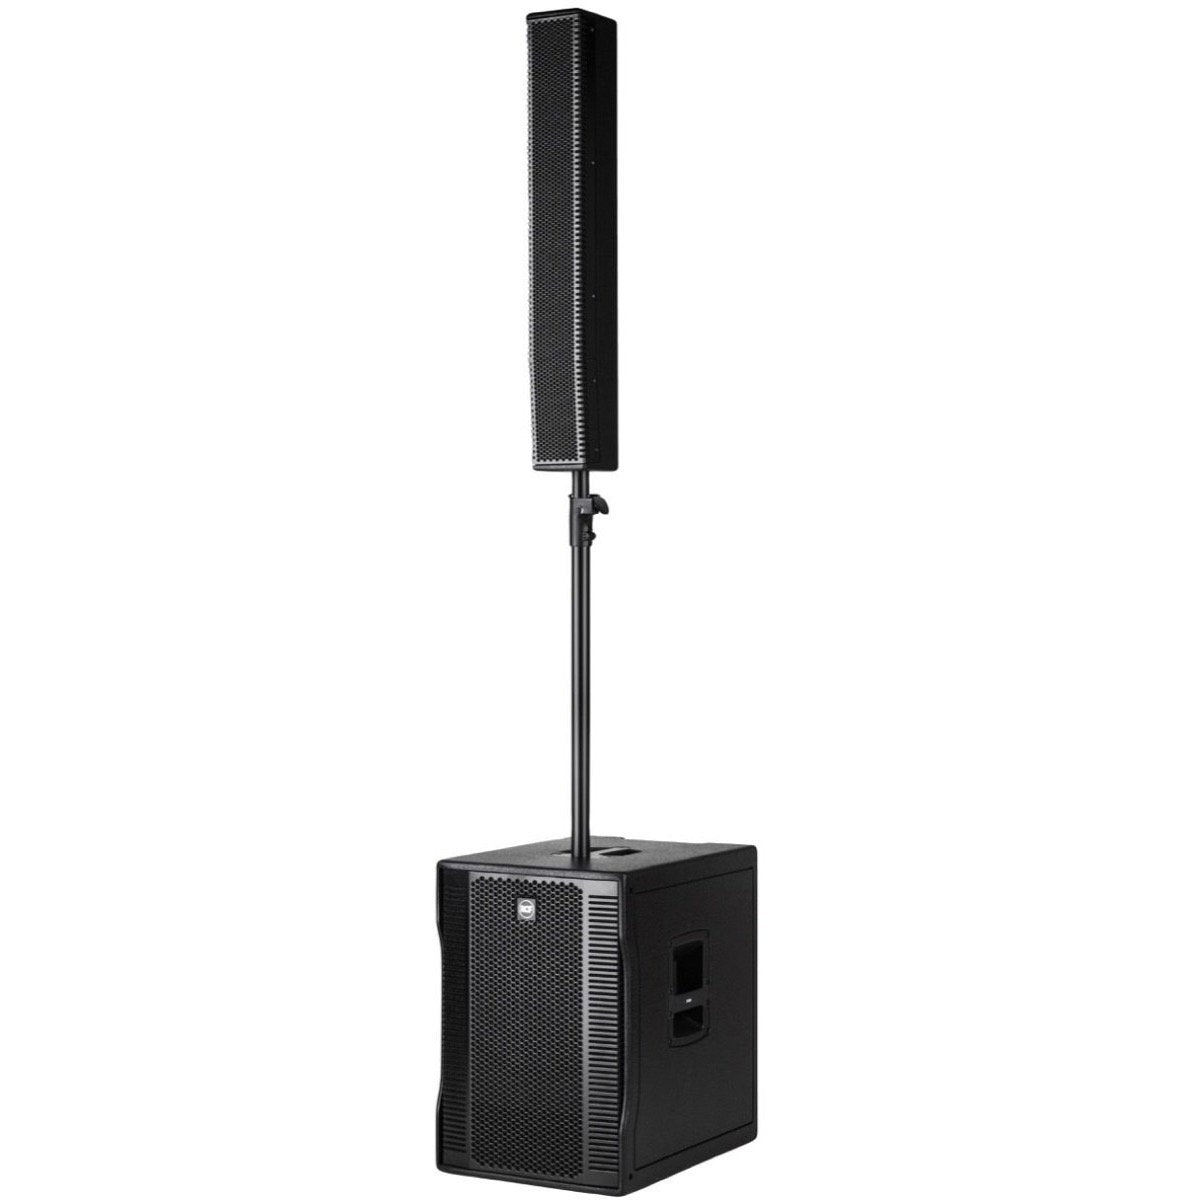 RCF EVOX 12 Active Speaker Array PA System, with EVOX 12 Cover